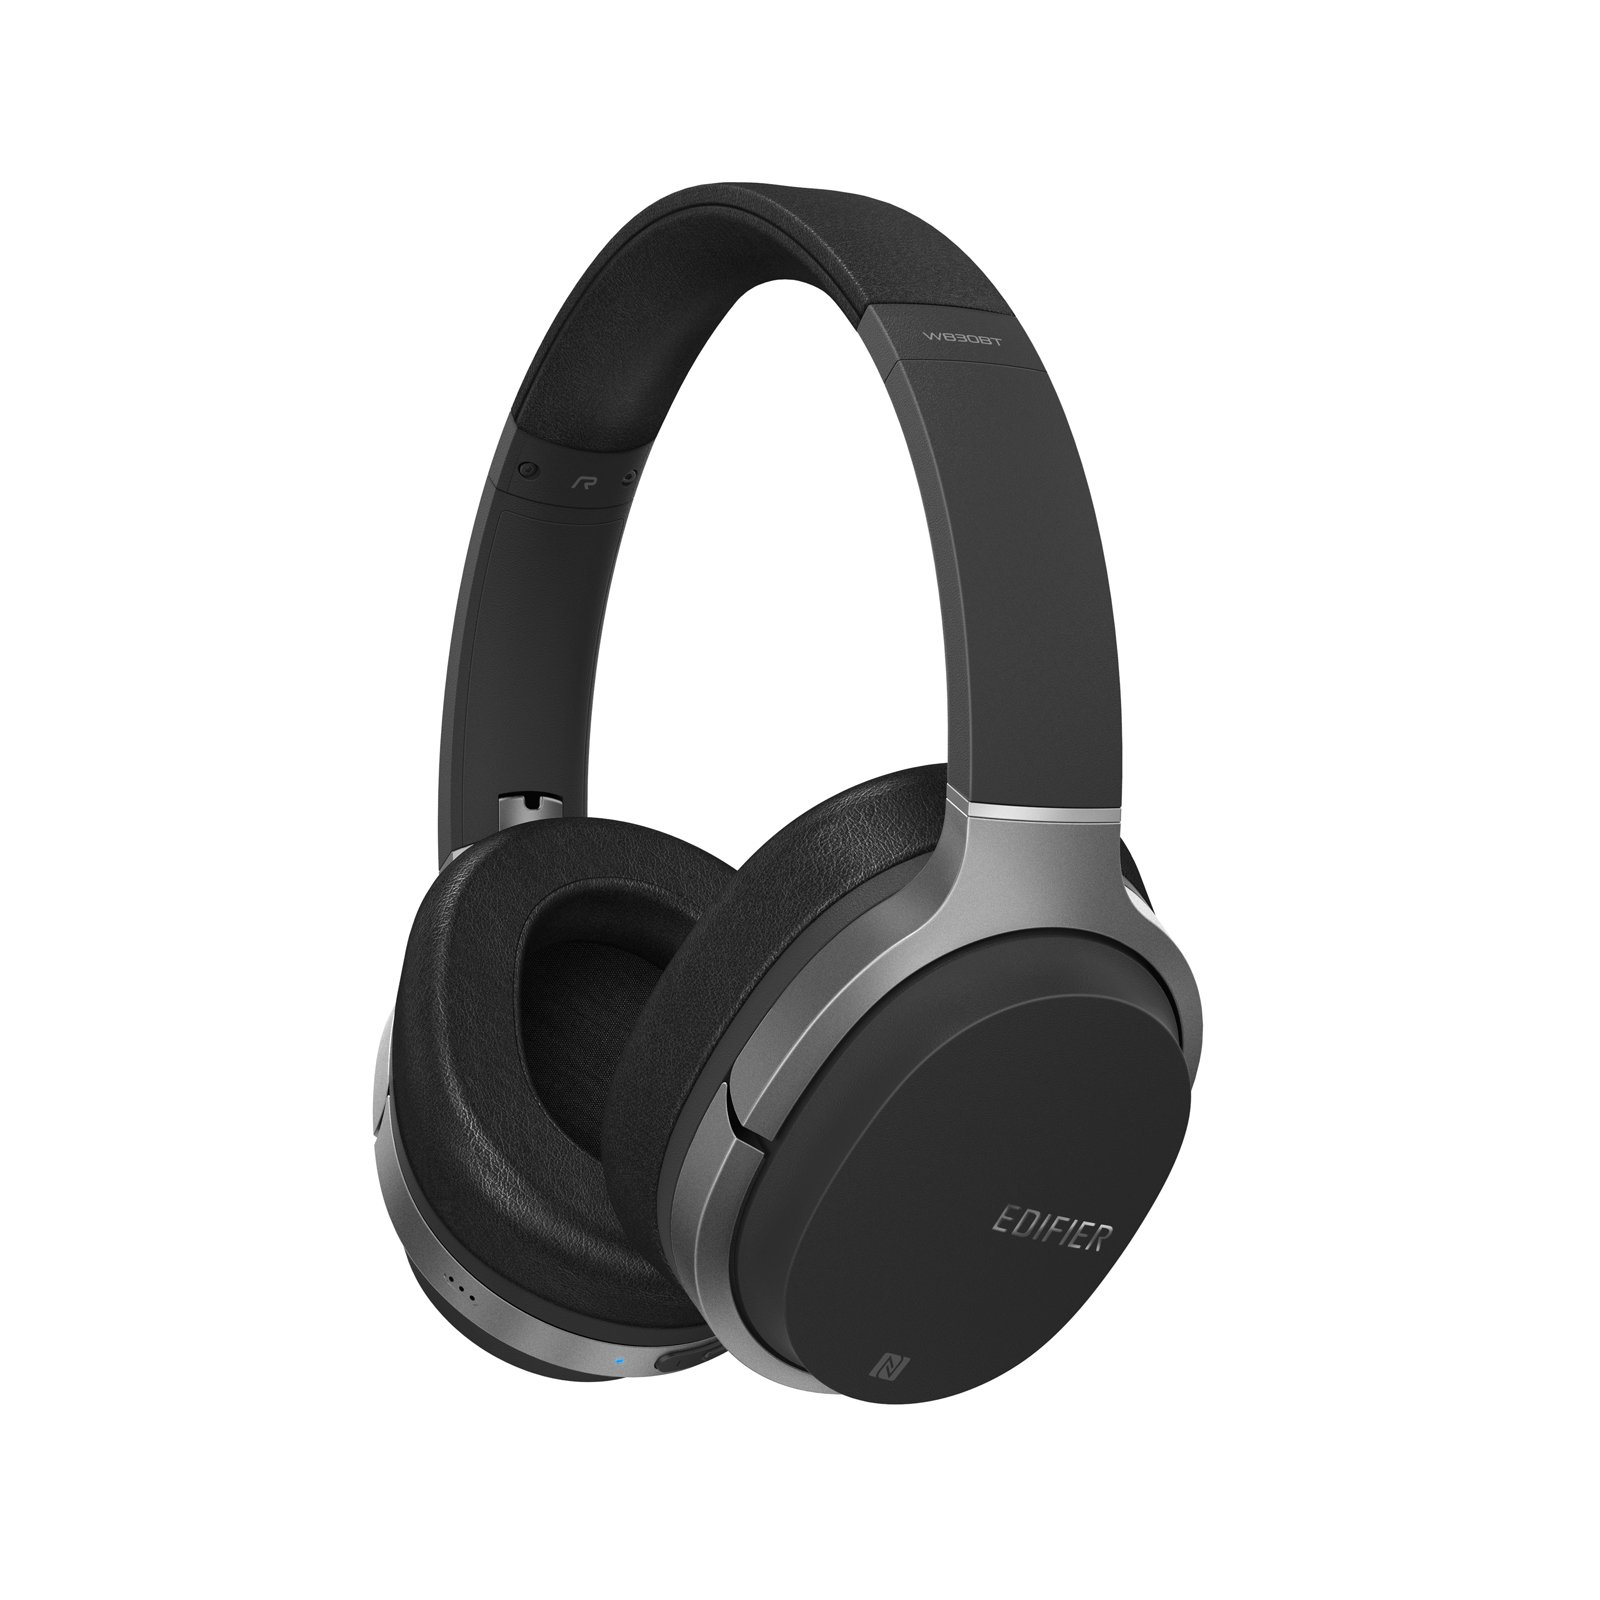 Auriculares Edifier W830bt Bluetooth Over-ear Inalambrico Stereo Hi-fi Headset Con Mic Y Remote Para Phones Pc Tablet Ma